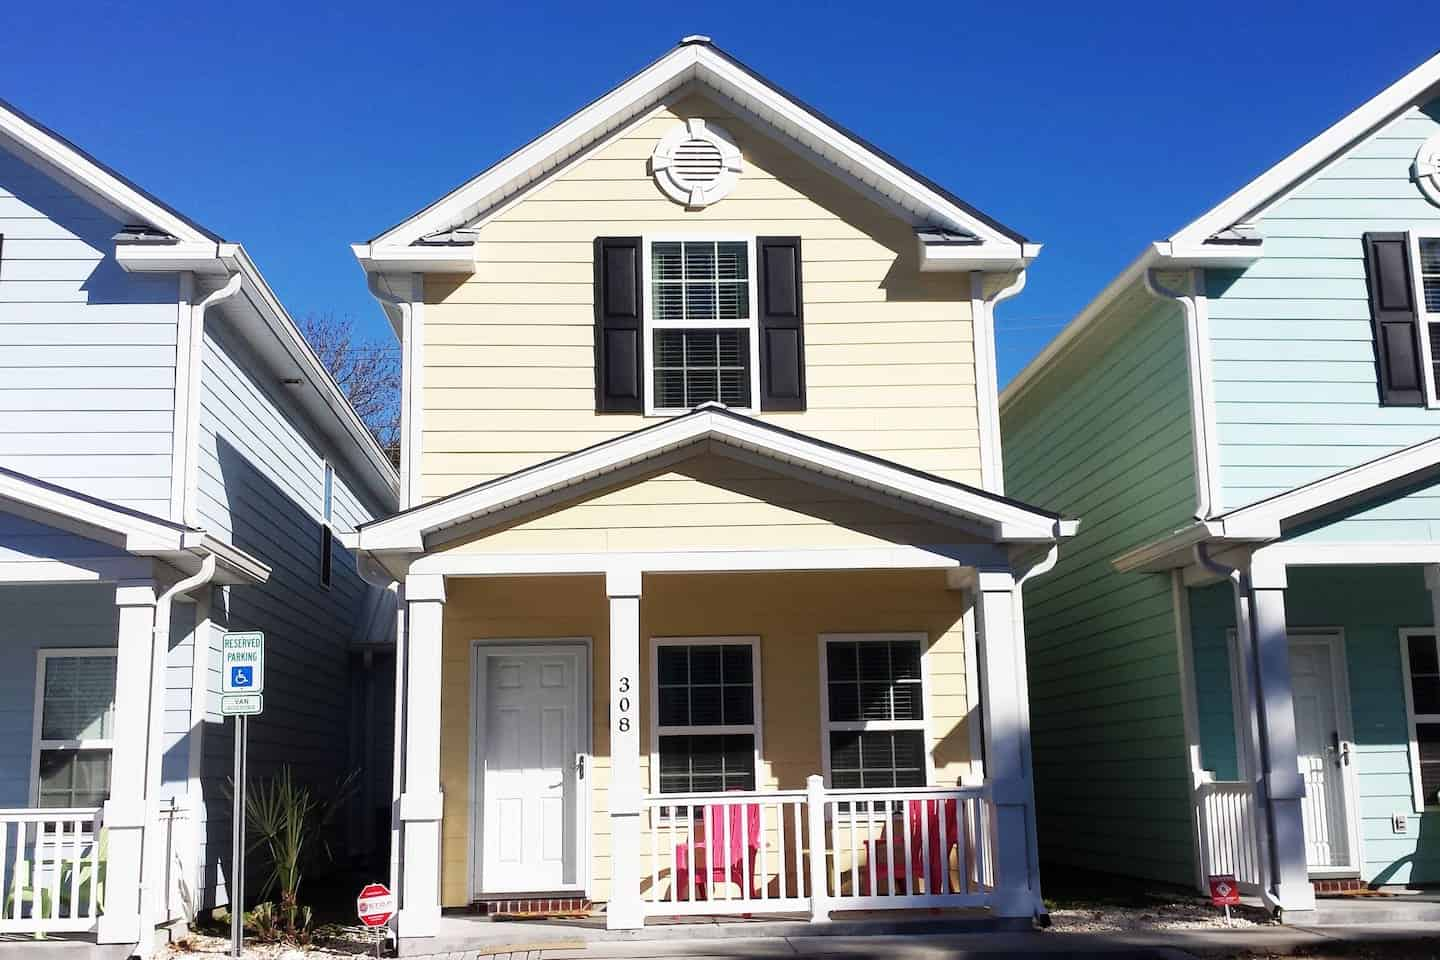 Image of Airbnb rental in Myrtle Beach South Carolina